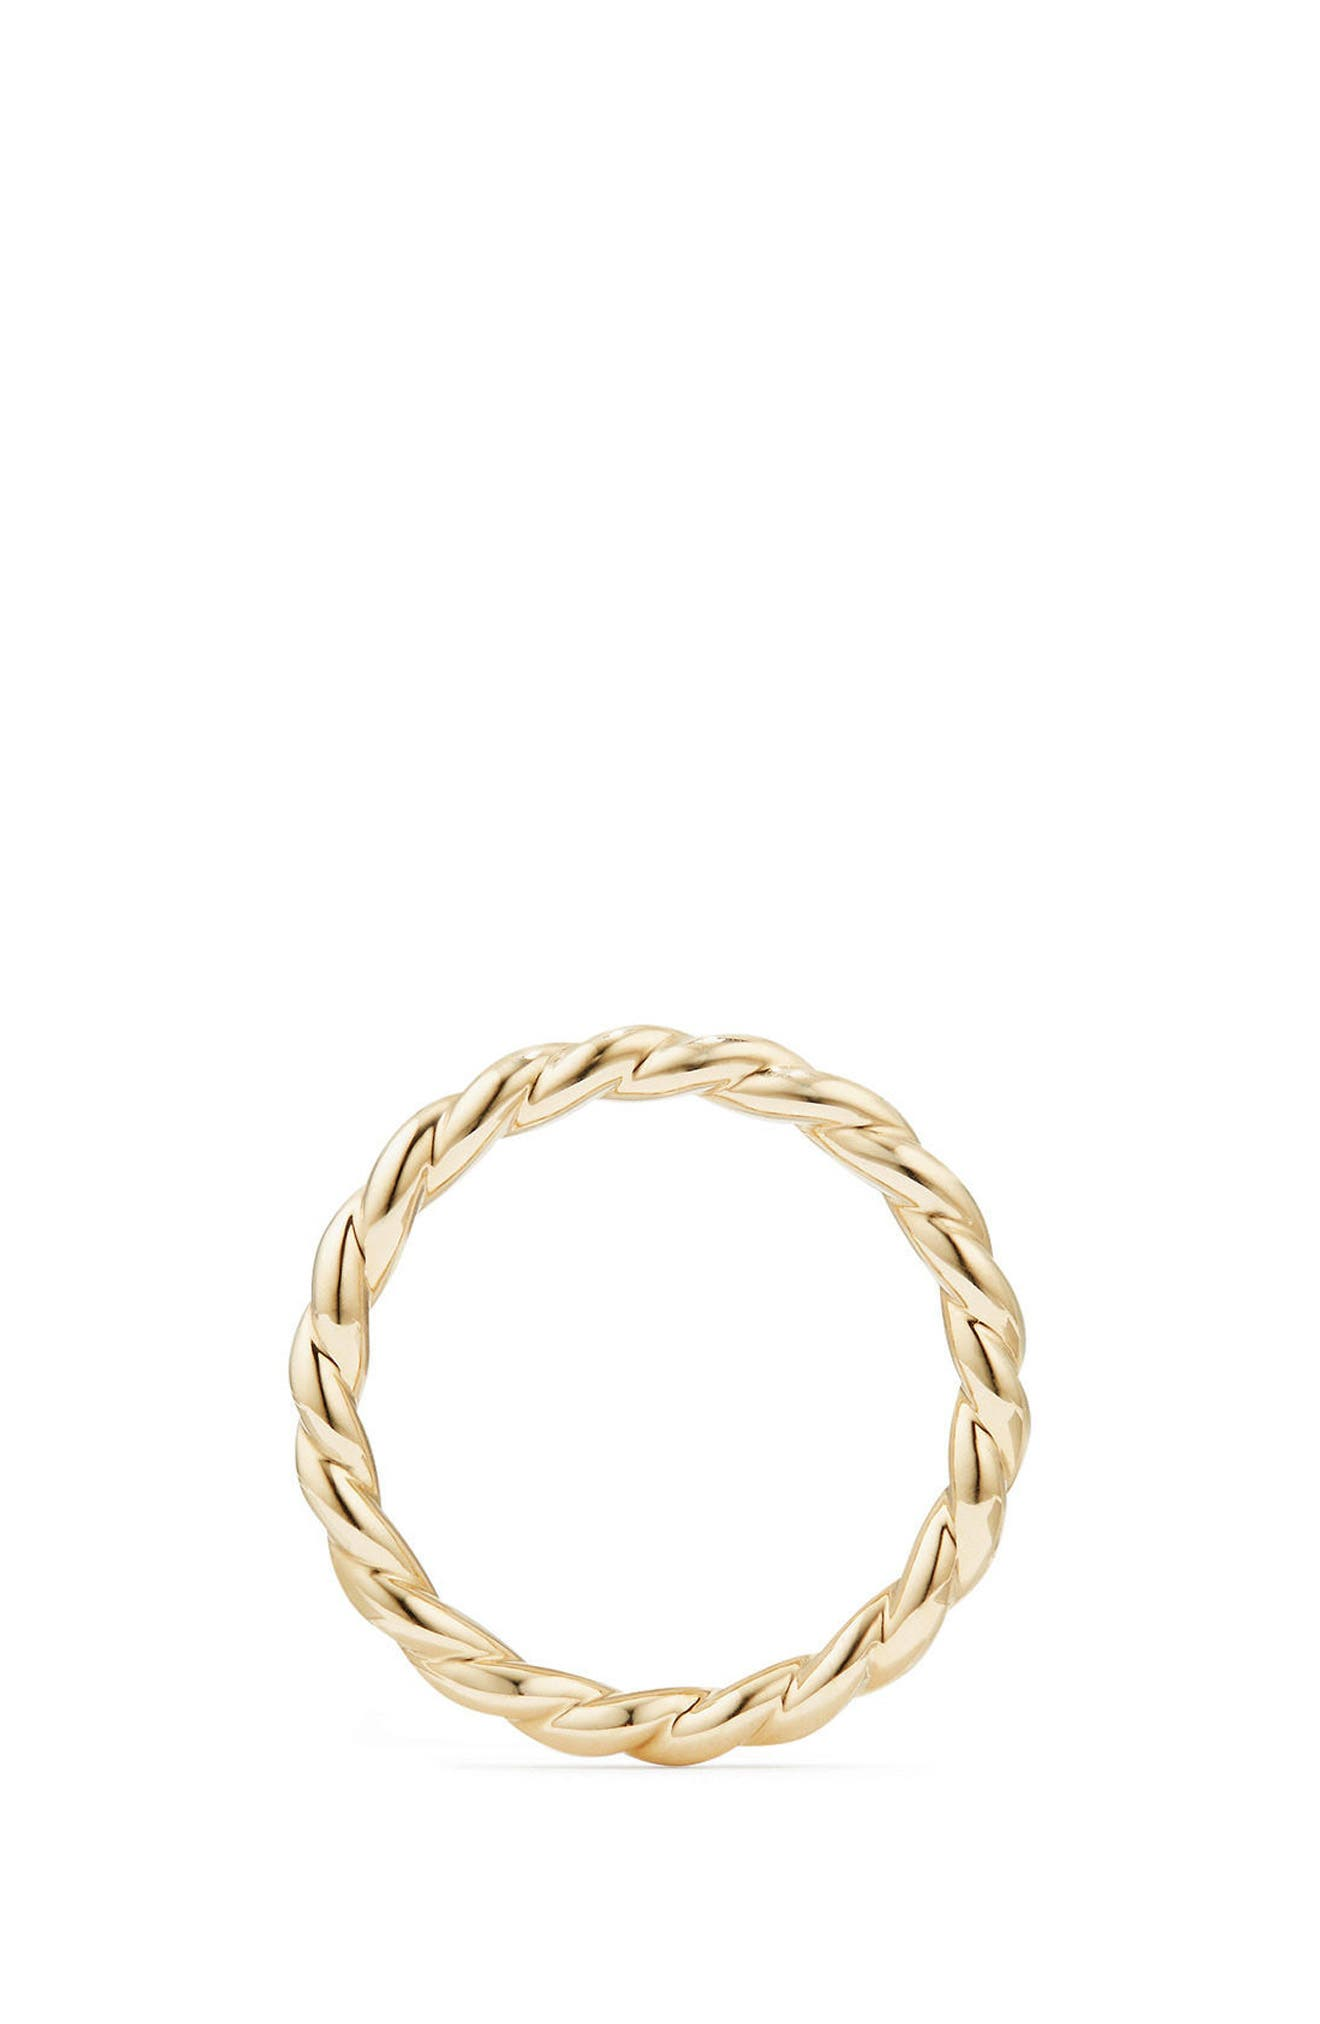 Paveflex Ring in 18K Gold, 2.7mm,                             Alternate thumbnail 2, color,                             YELLOW GOLD